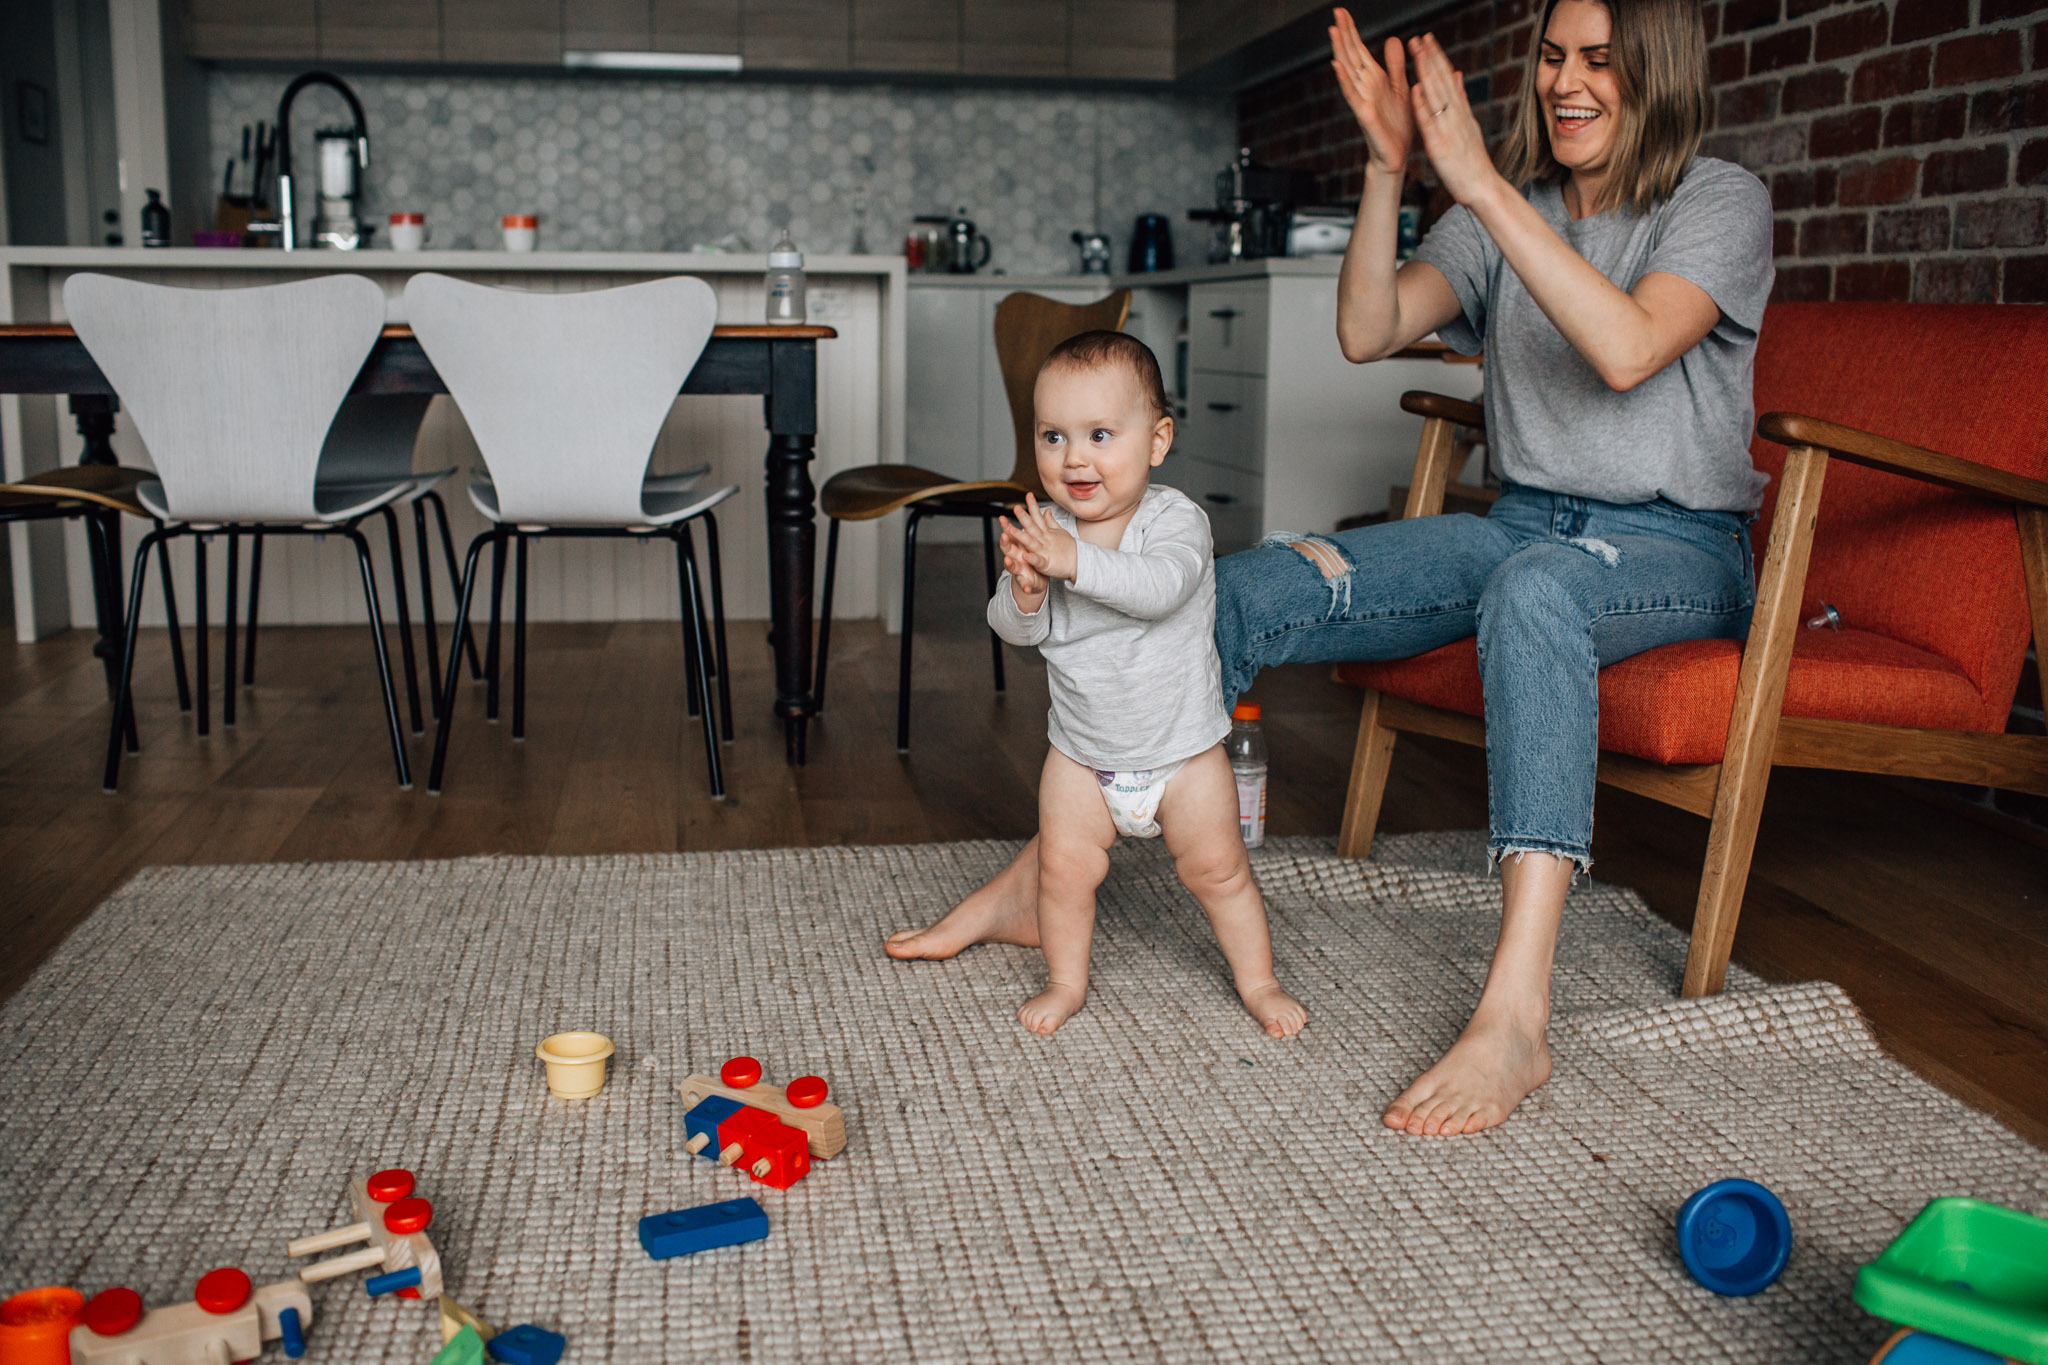 little-baby-standing-and-clapping (1 of 1).jpg